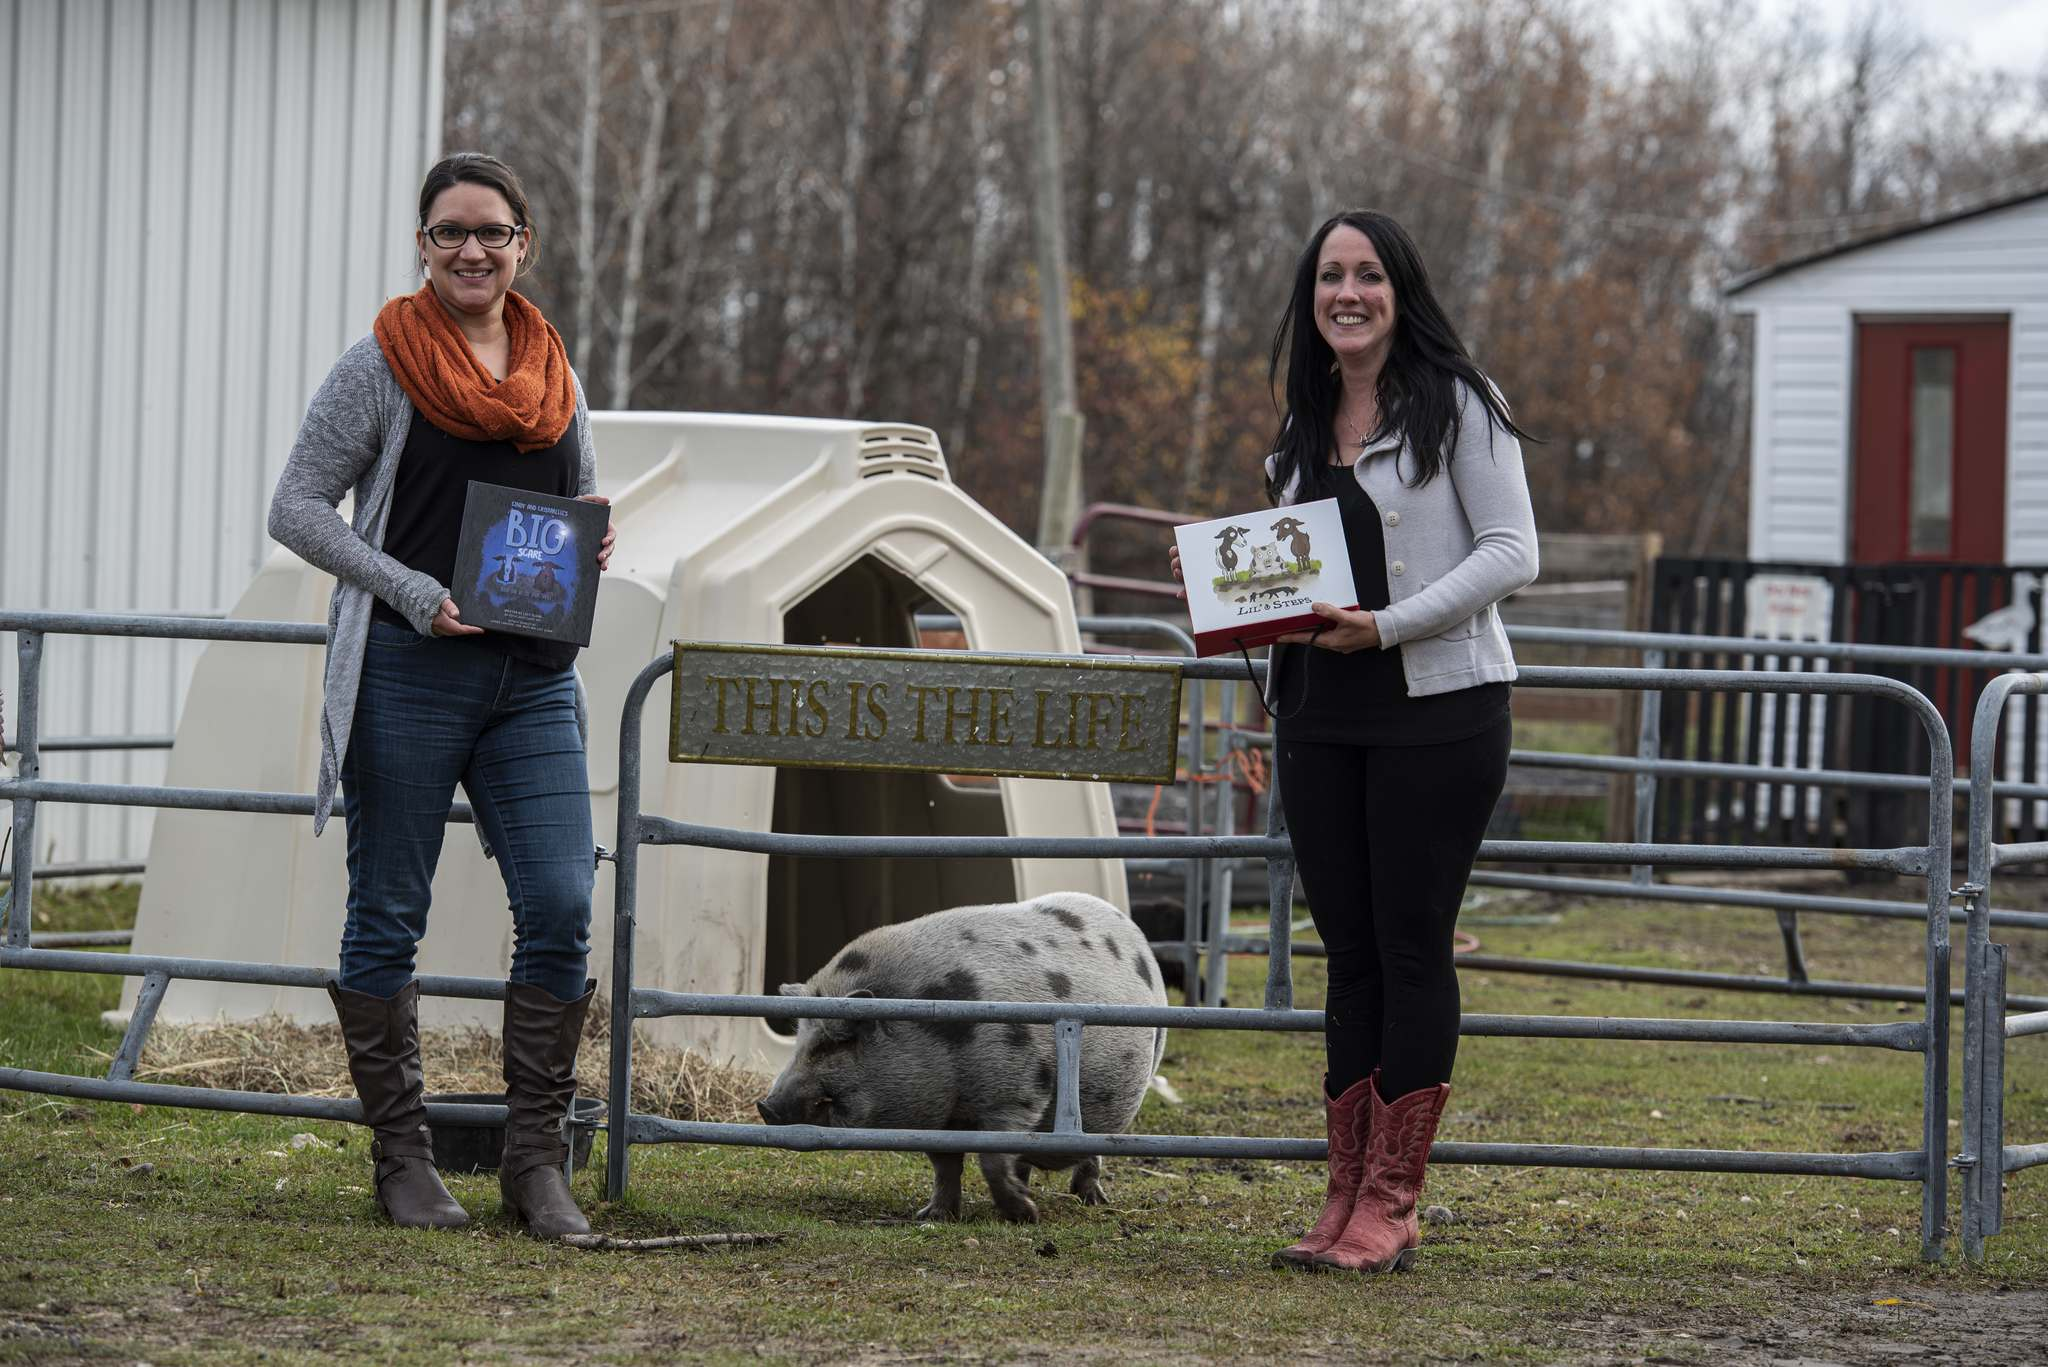 SUPPLIED PHOTO</p><p>Lucy Sloan (right) and her colleague Joanne Lariviere pose with Wilbert the pig, a resident of Lil' Steps Miniature and Wellness Farm and a character in Sloan's children's book Cindy and Christabelle's Big Scare.</p>